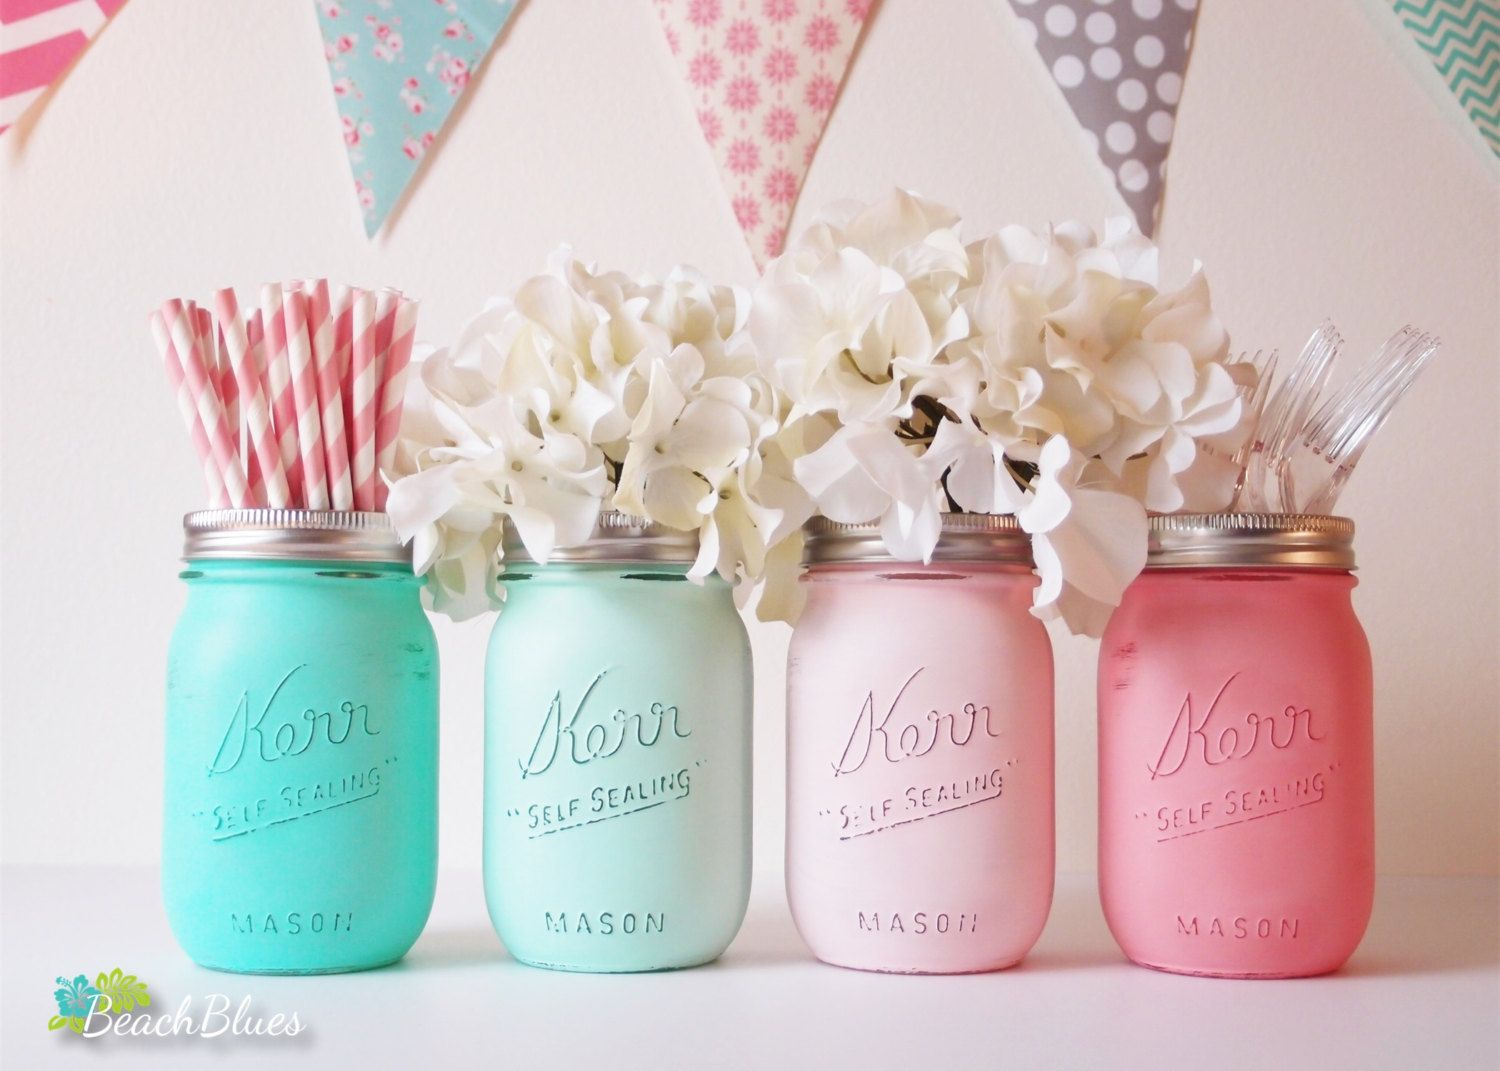 Baby shower centerpiece painted mason jars decoration home decor baby shower centerpiece painted mason jars decoration home decor vase neutral boy girl aqua mint pink reviewsmspy